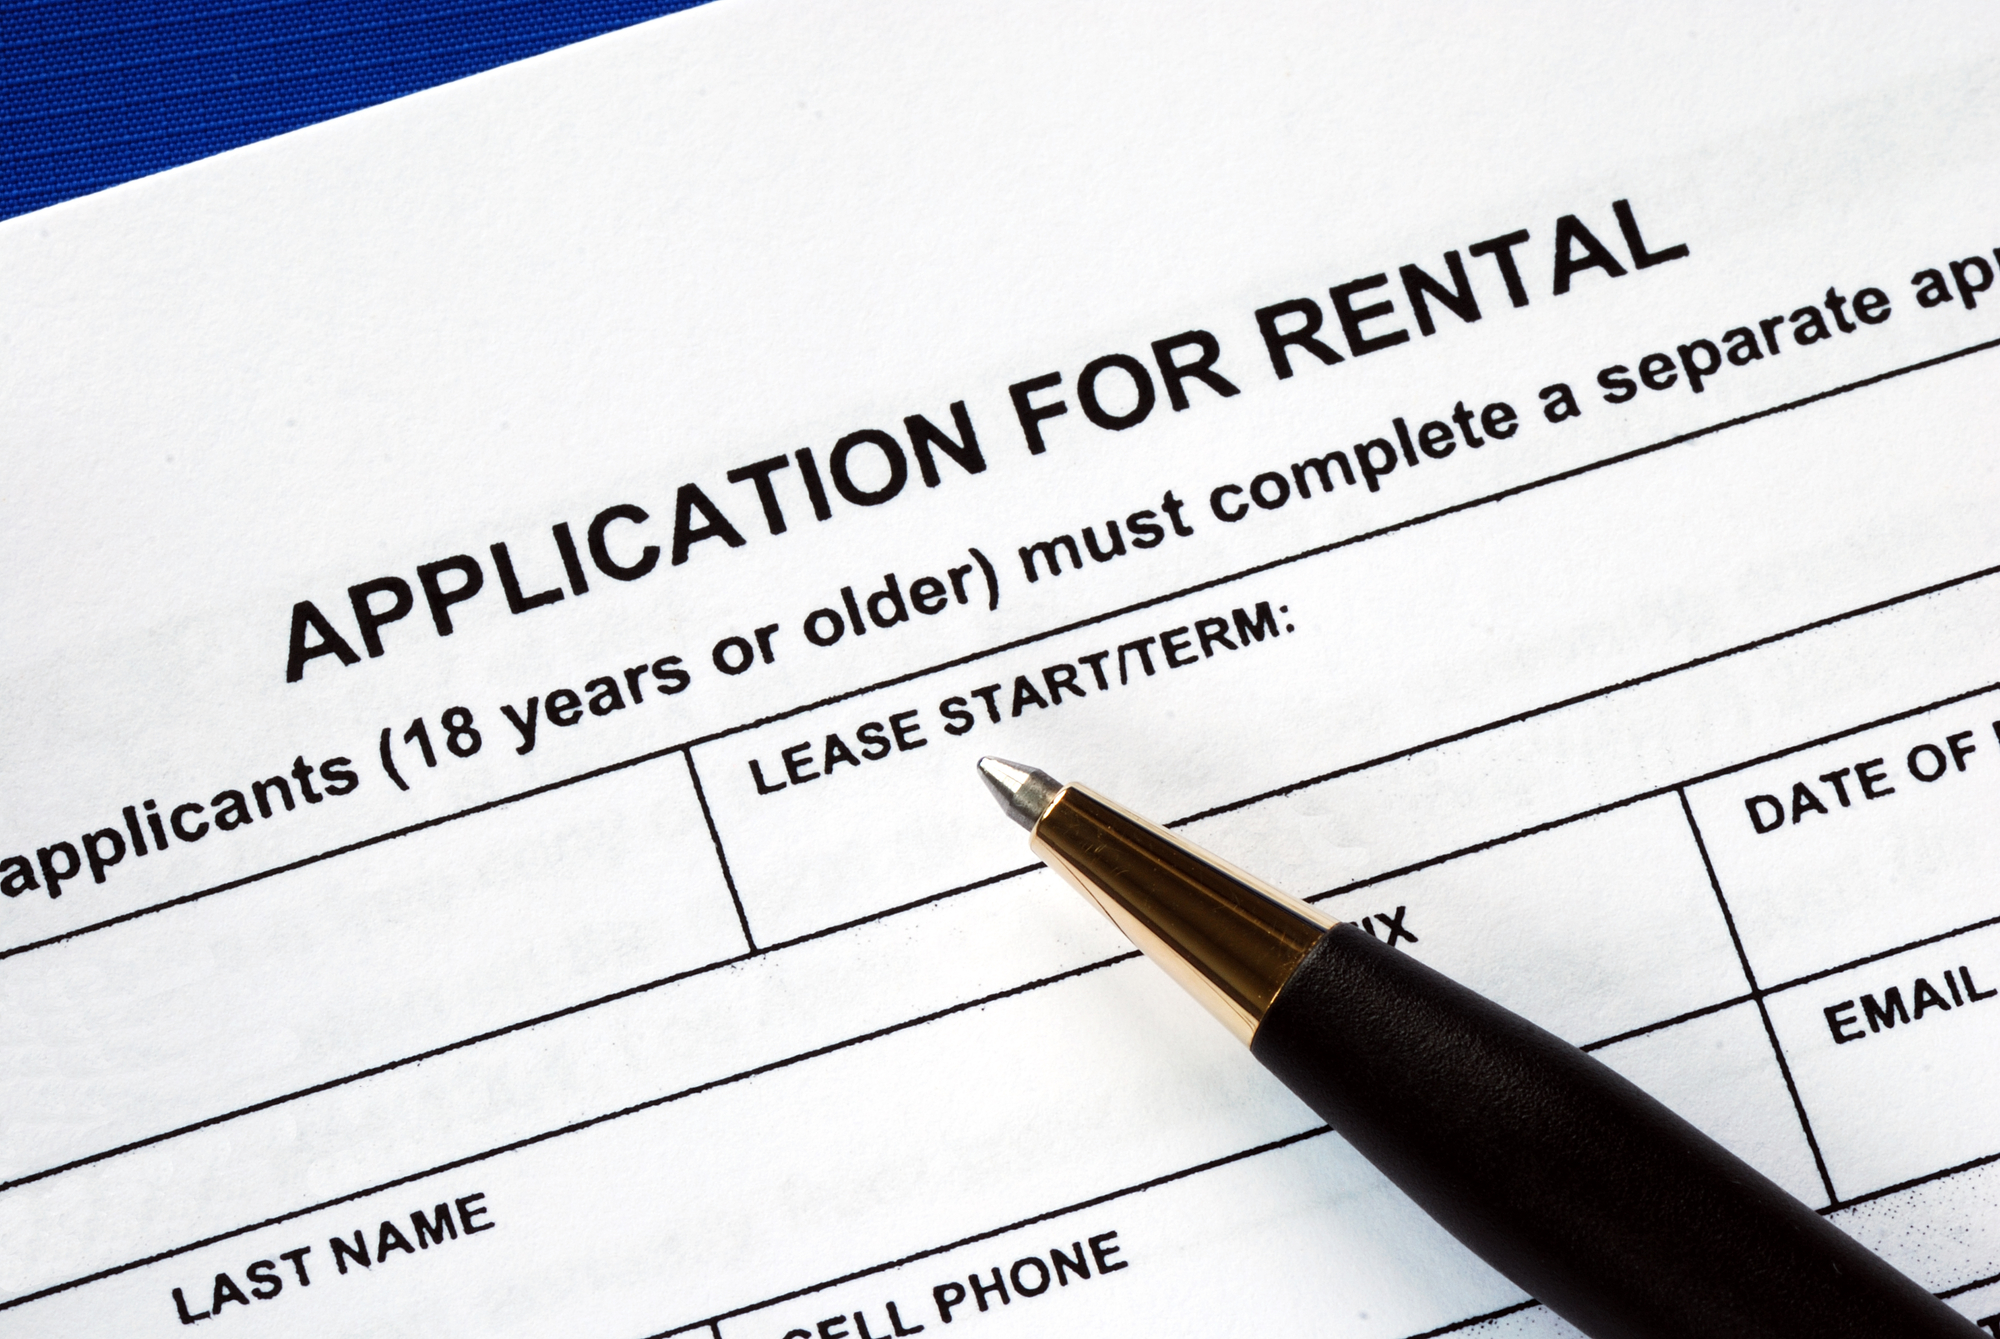 Photo of a rental application and pen.